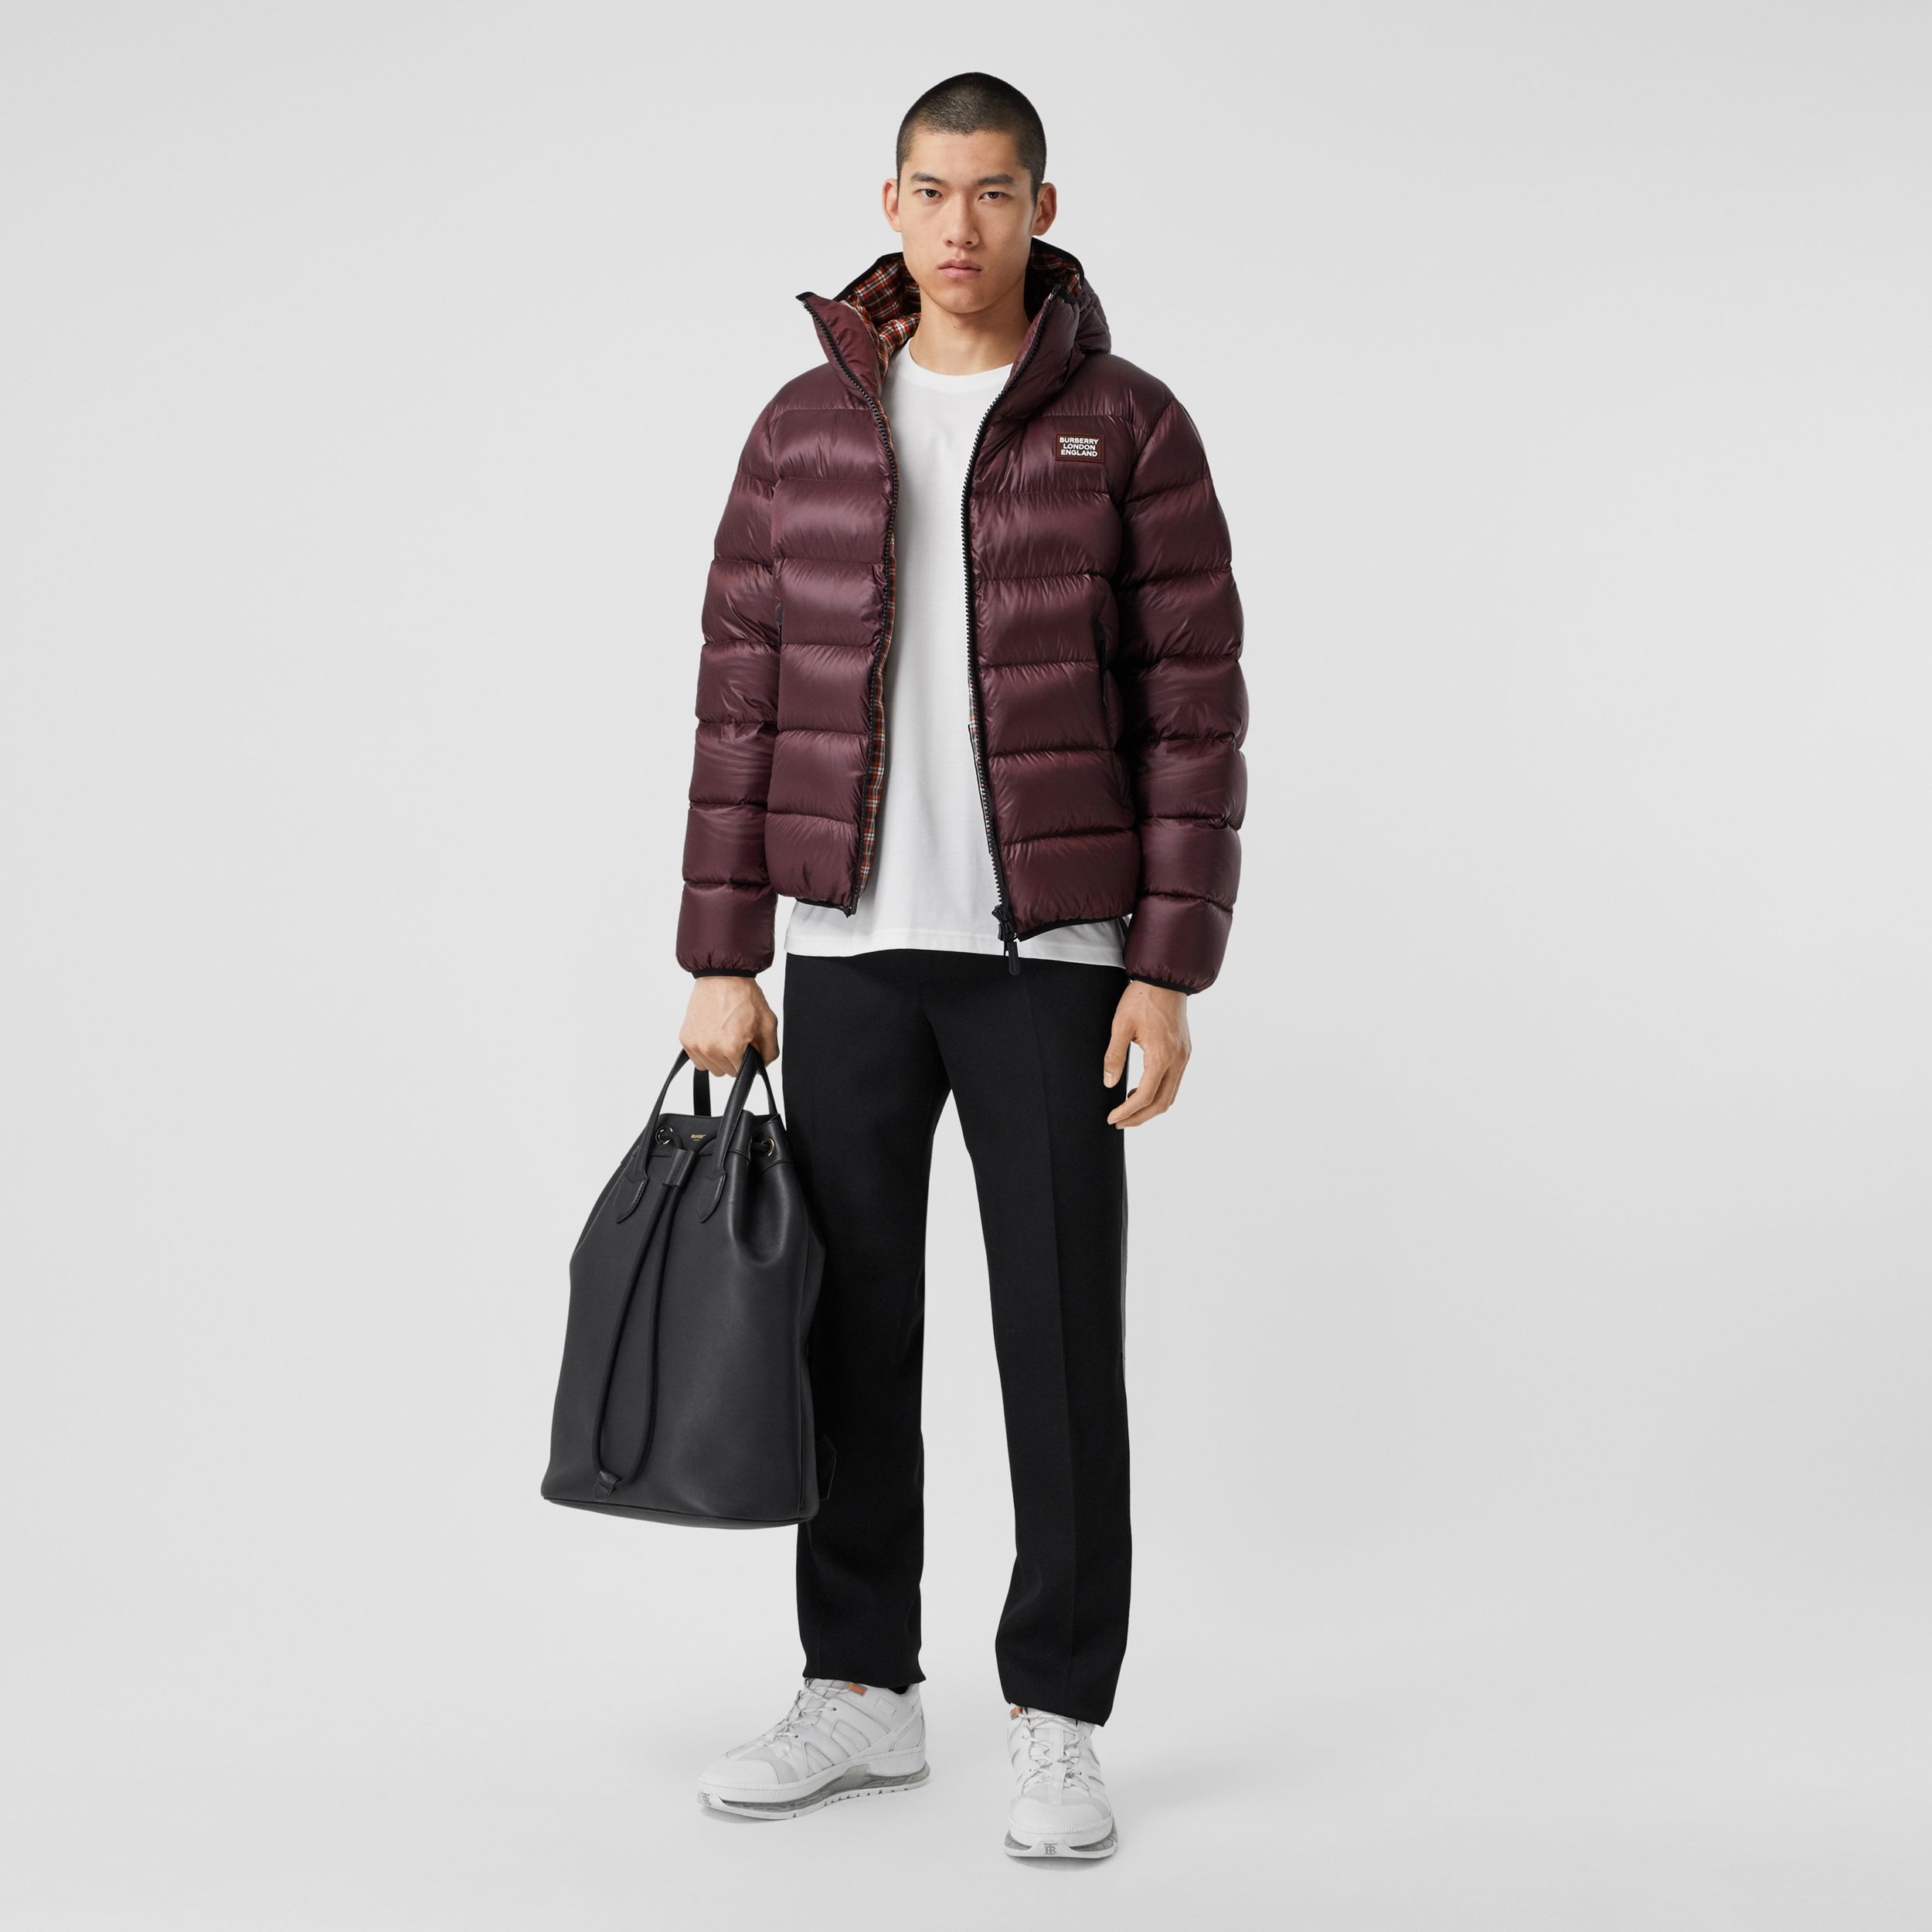 Logo Appliqué Hooded Puffer Jacket in Dark Plum | Burberry Canada - 1